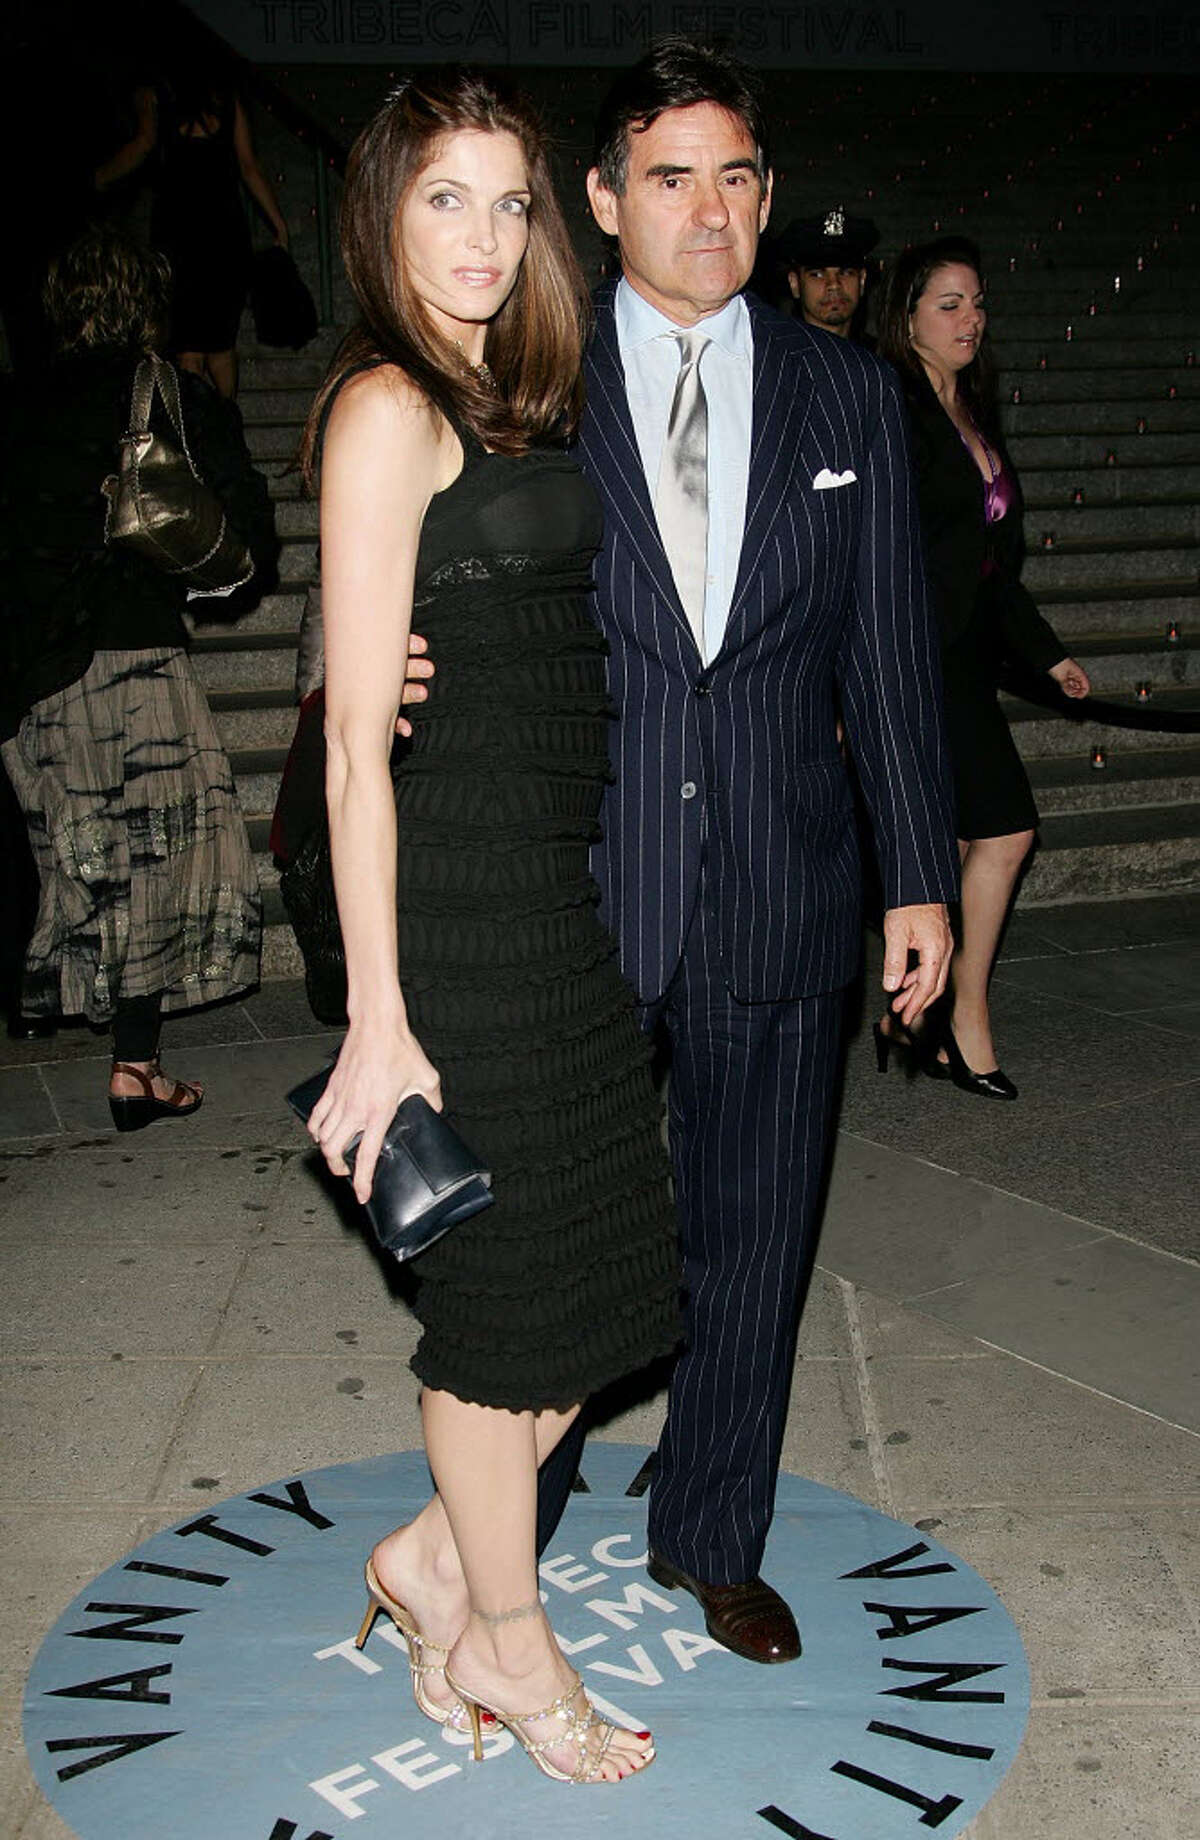 Stephanie Seymour and Peter Brant in New York City in 2007. The couple, once involved in a year-long bitter divorce battle, have reconciled.